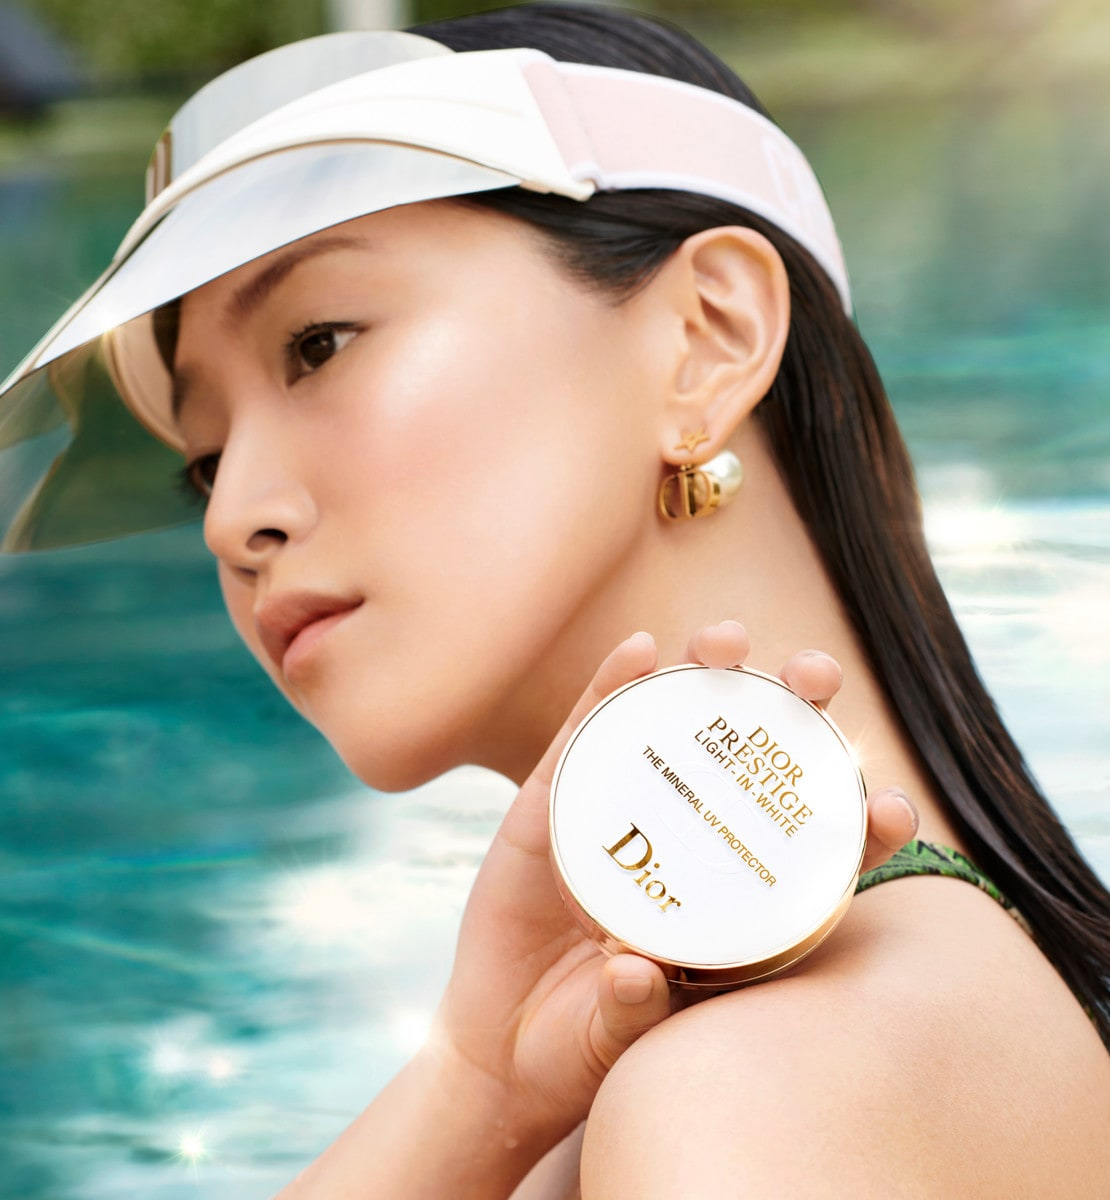 The Mineral UV Protector Blemish Balm Compact SPF 50+ PA+++